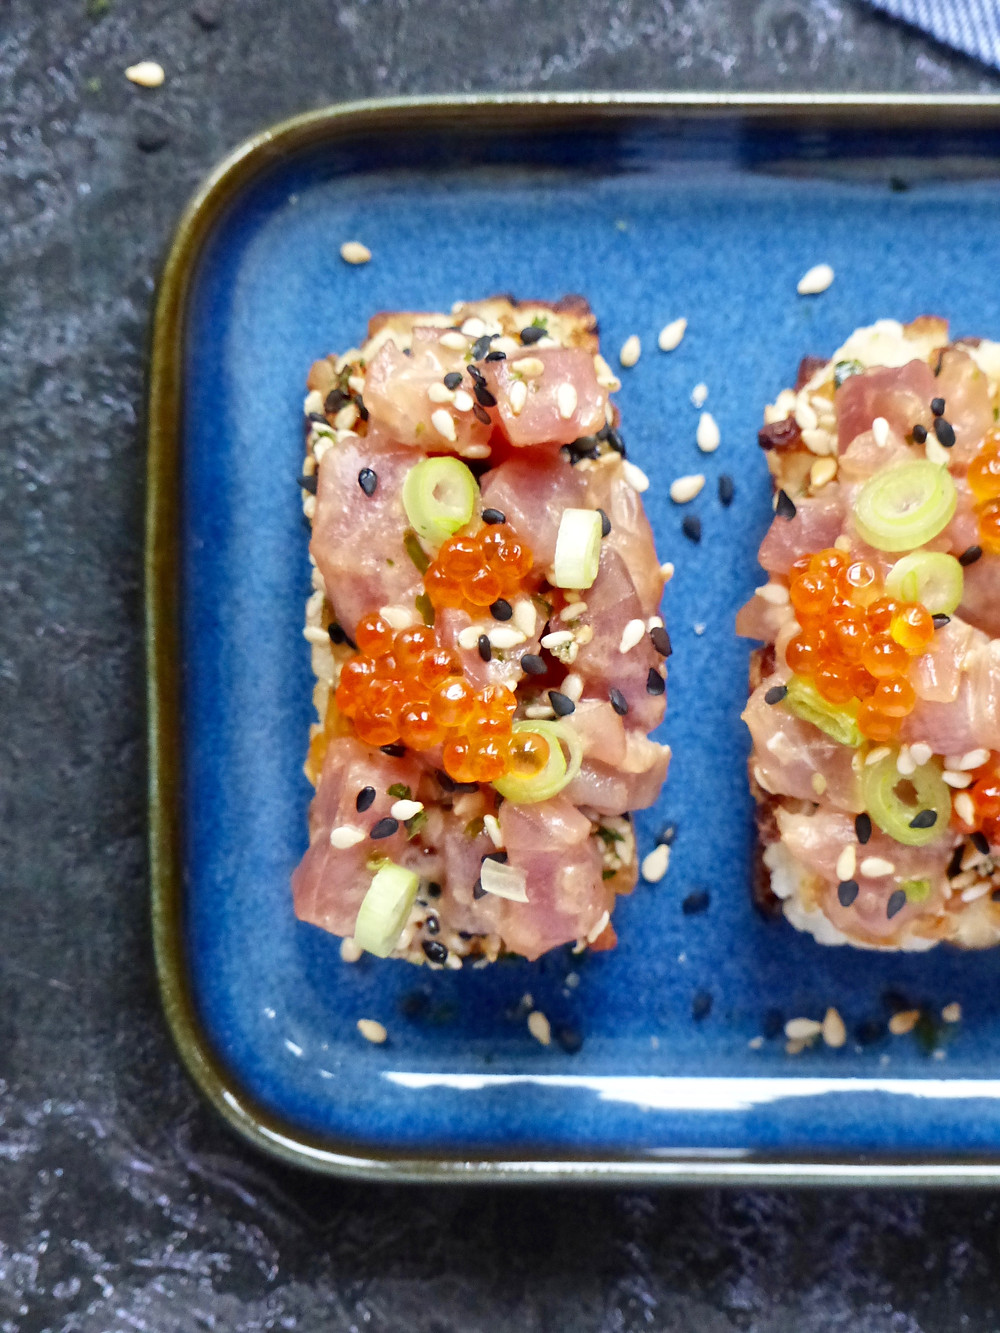 Crisp rice rectangles topped with a spicy tuna mixture with sriracha, sesame oil, soy sauce, scallions and trout roe